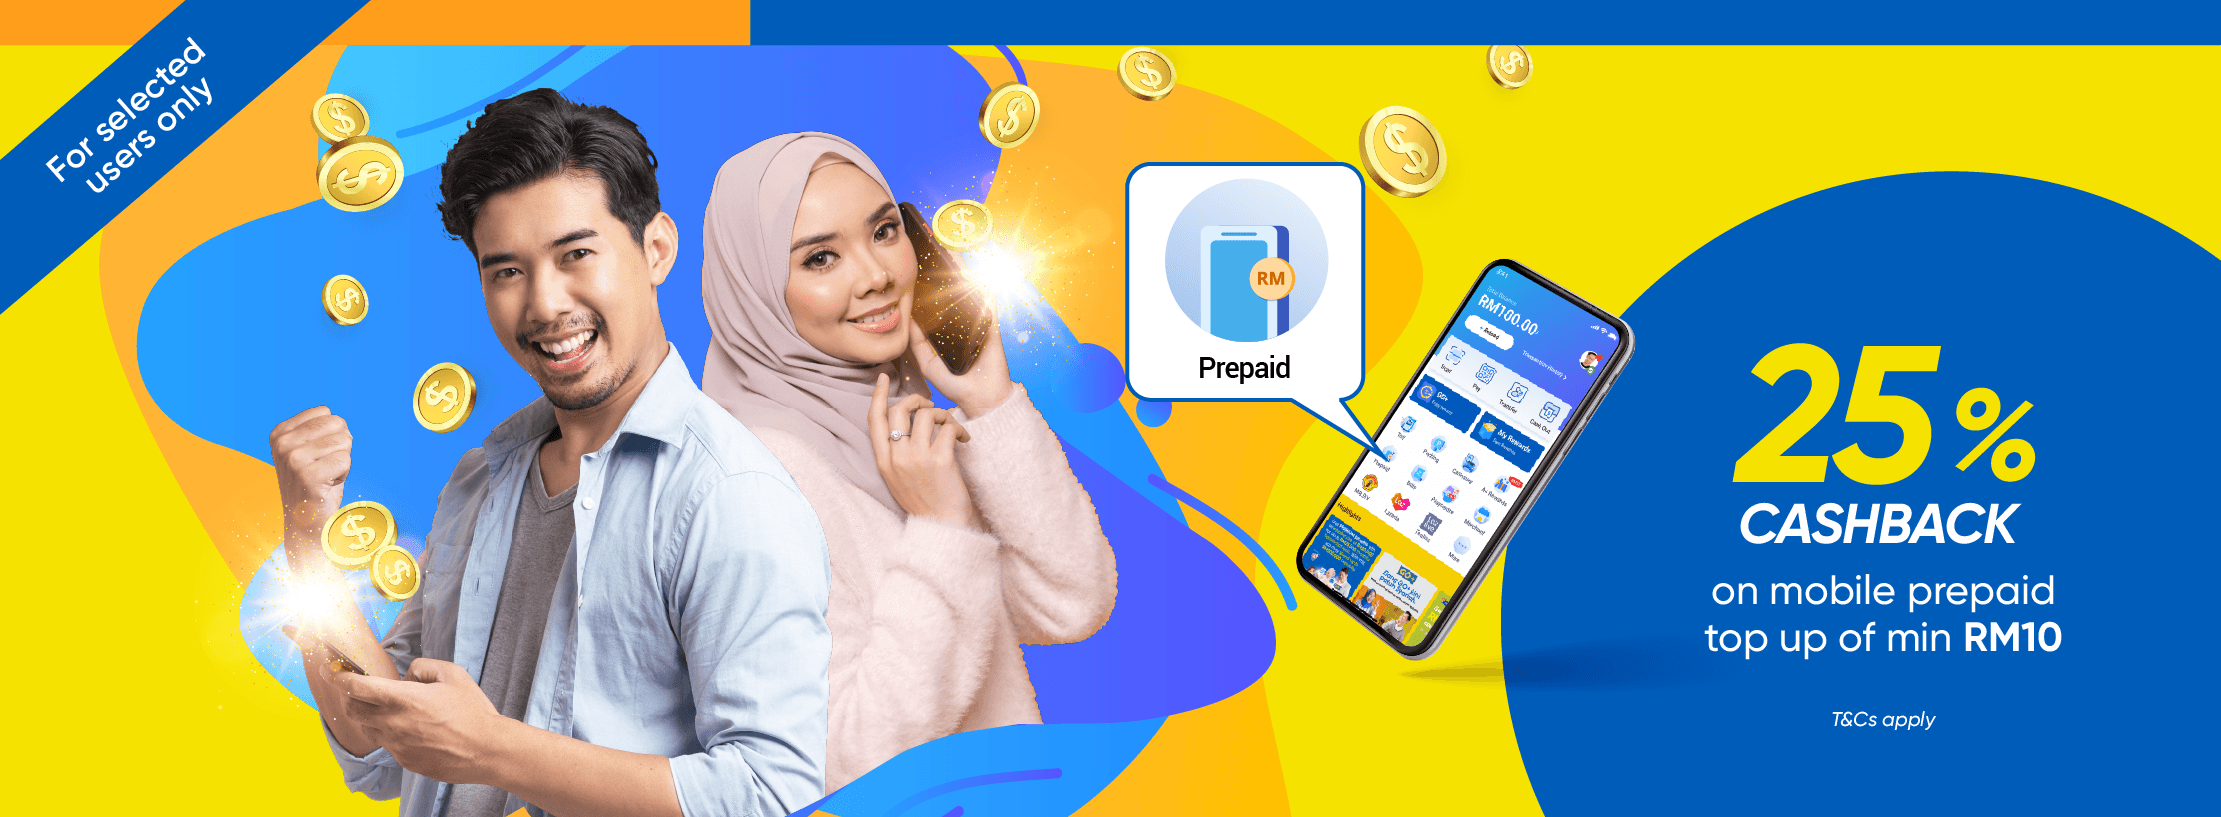 Mobile Prepaid 25% Cashback Special